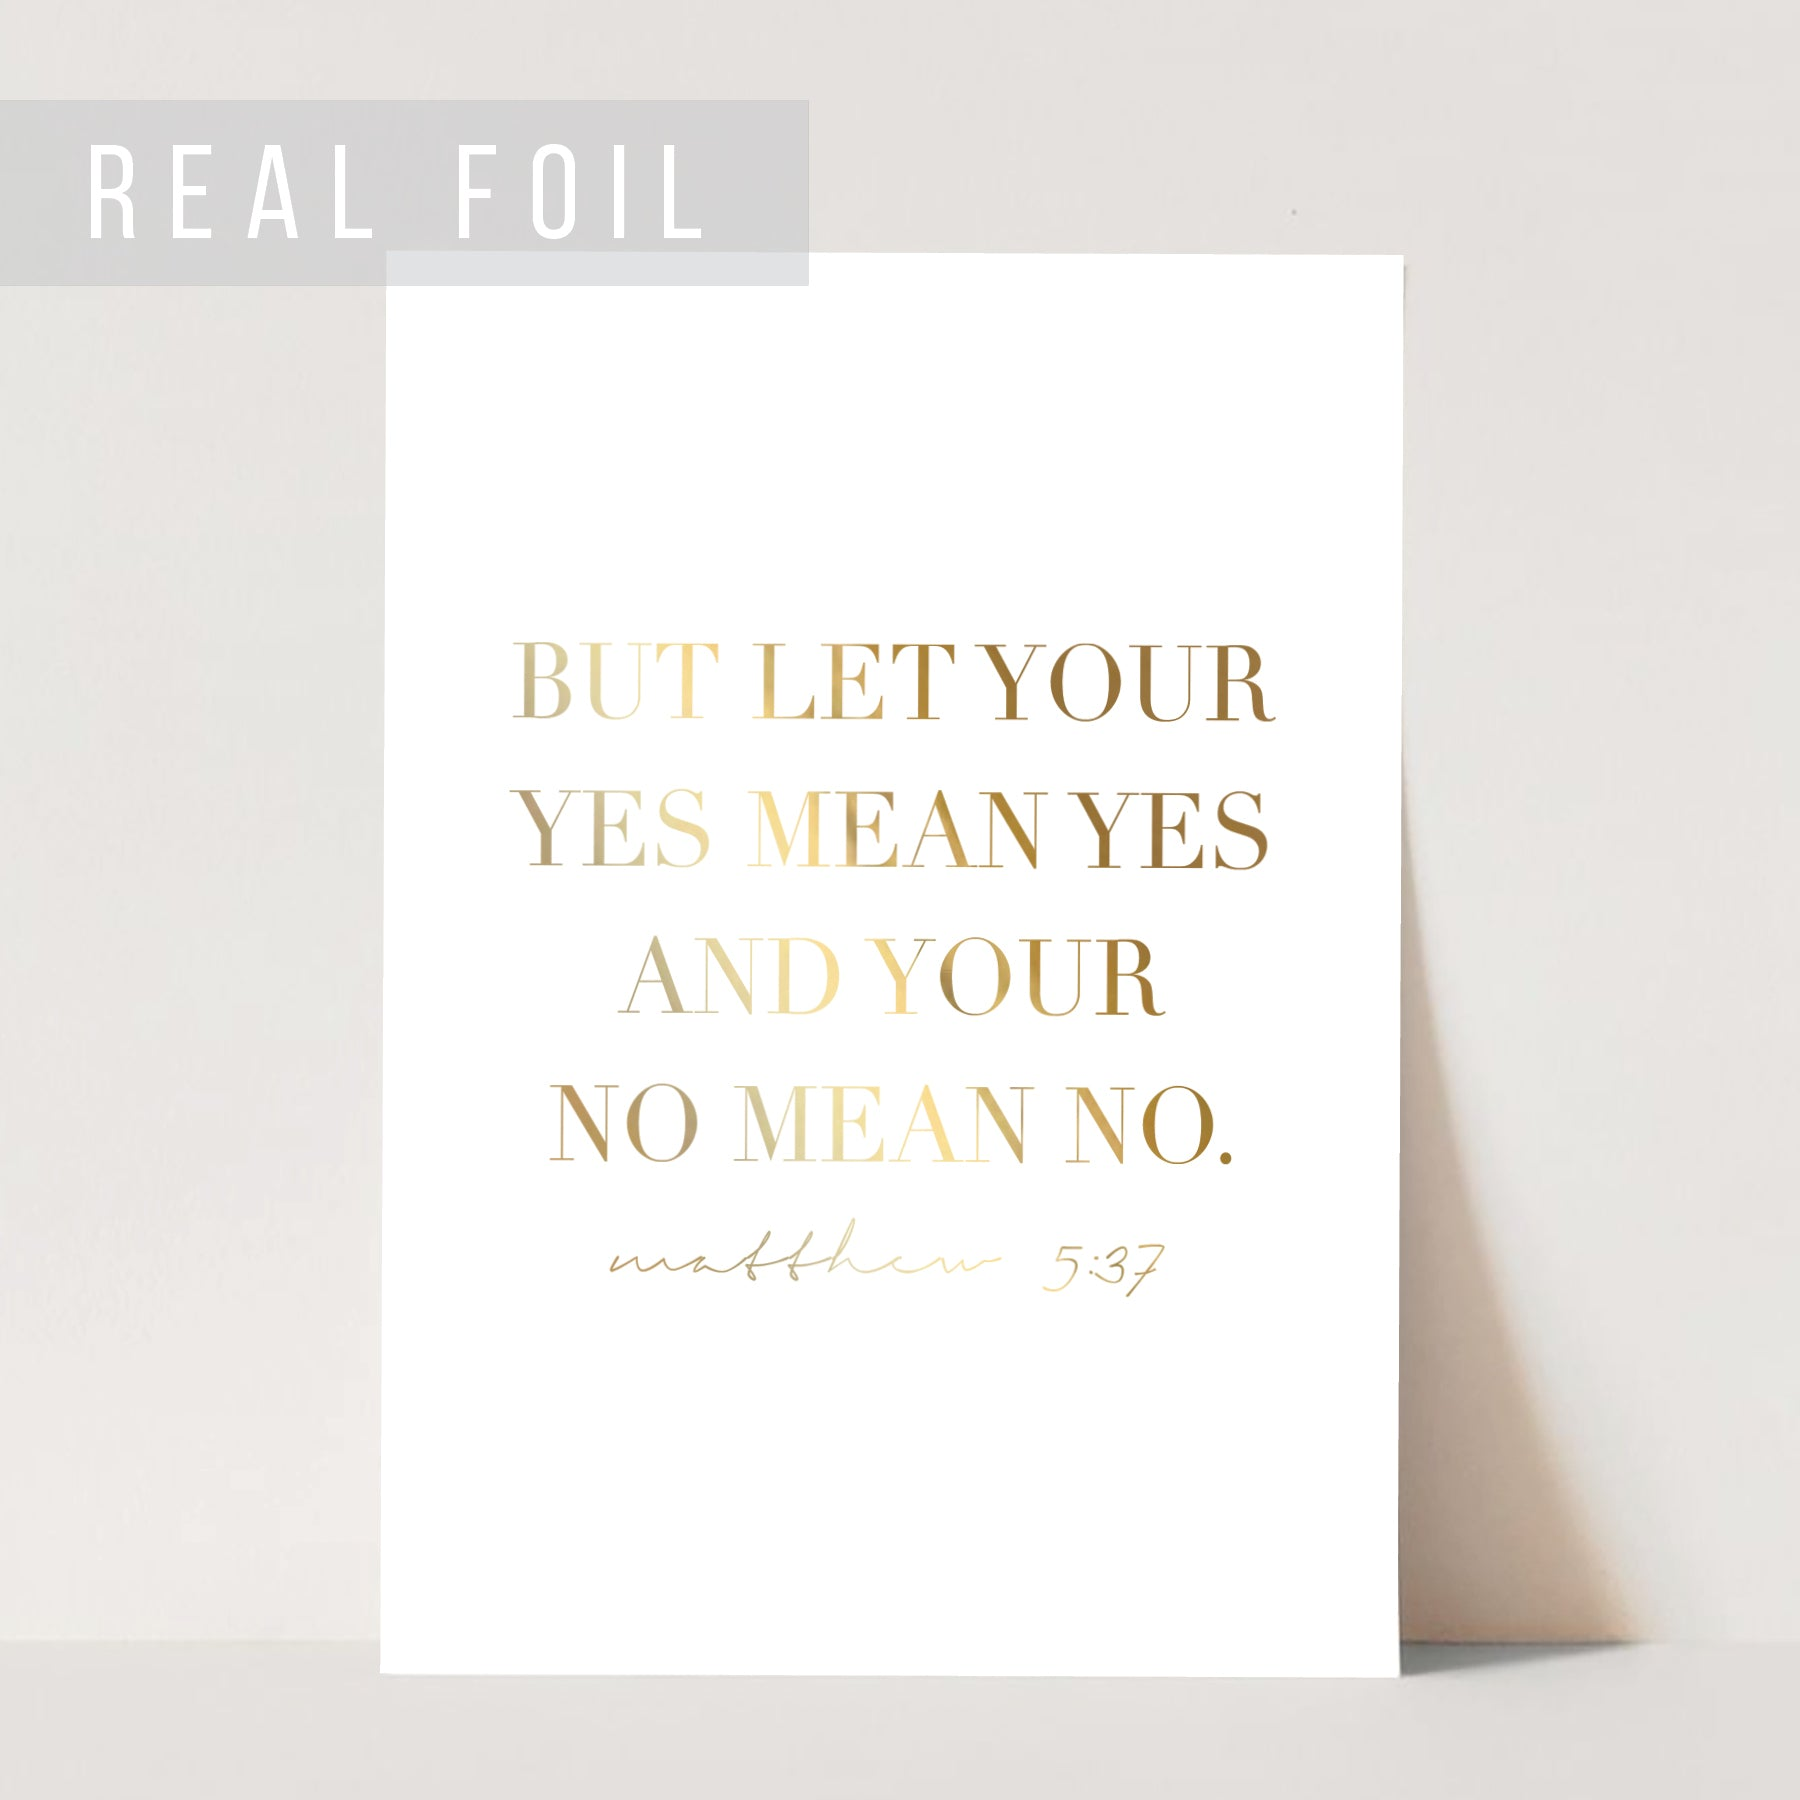 But Let Your Yes Mean Yes and You No Mean No. -Matthew 5:37 Foiled Art Print